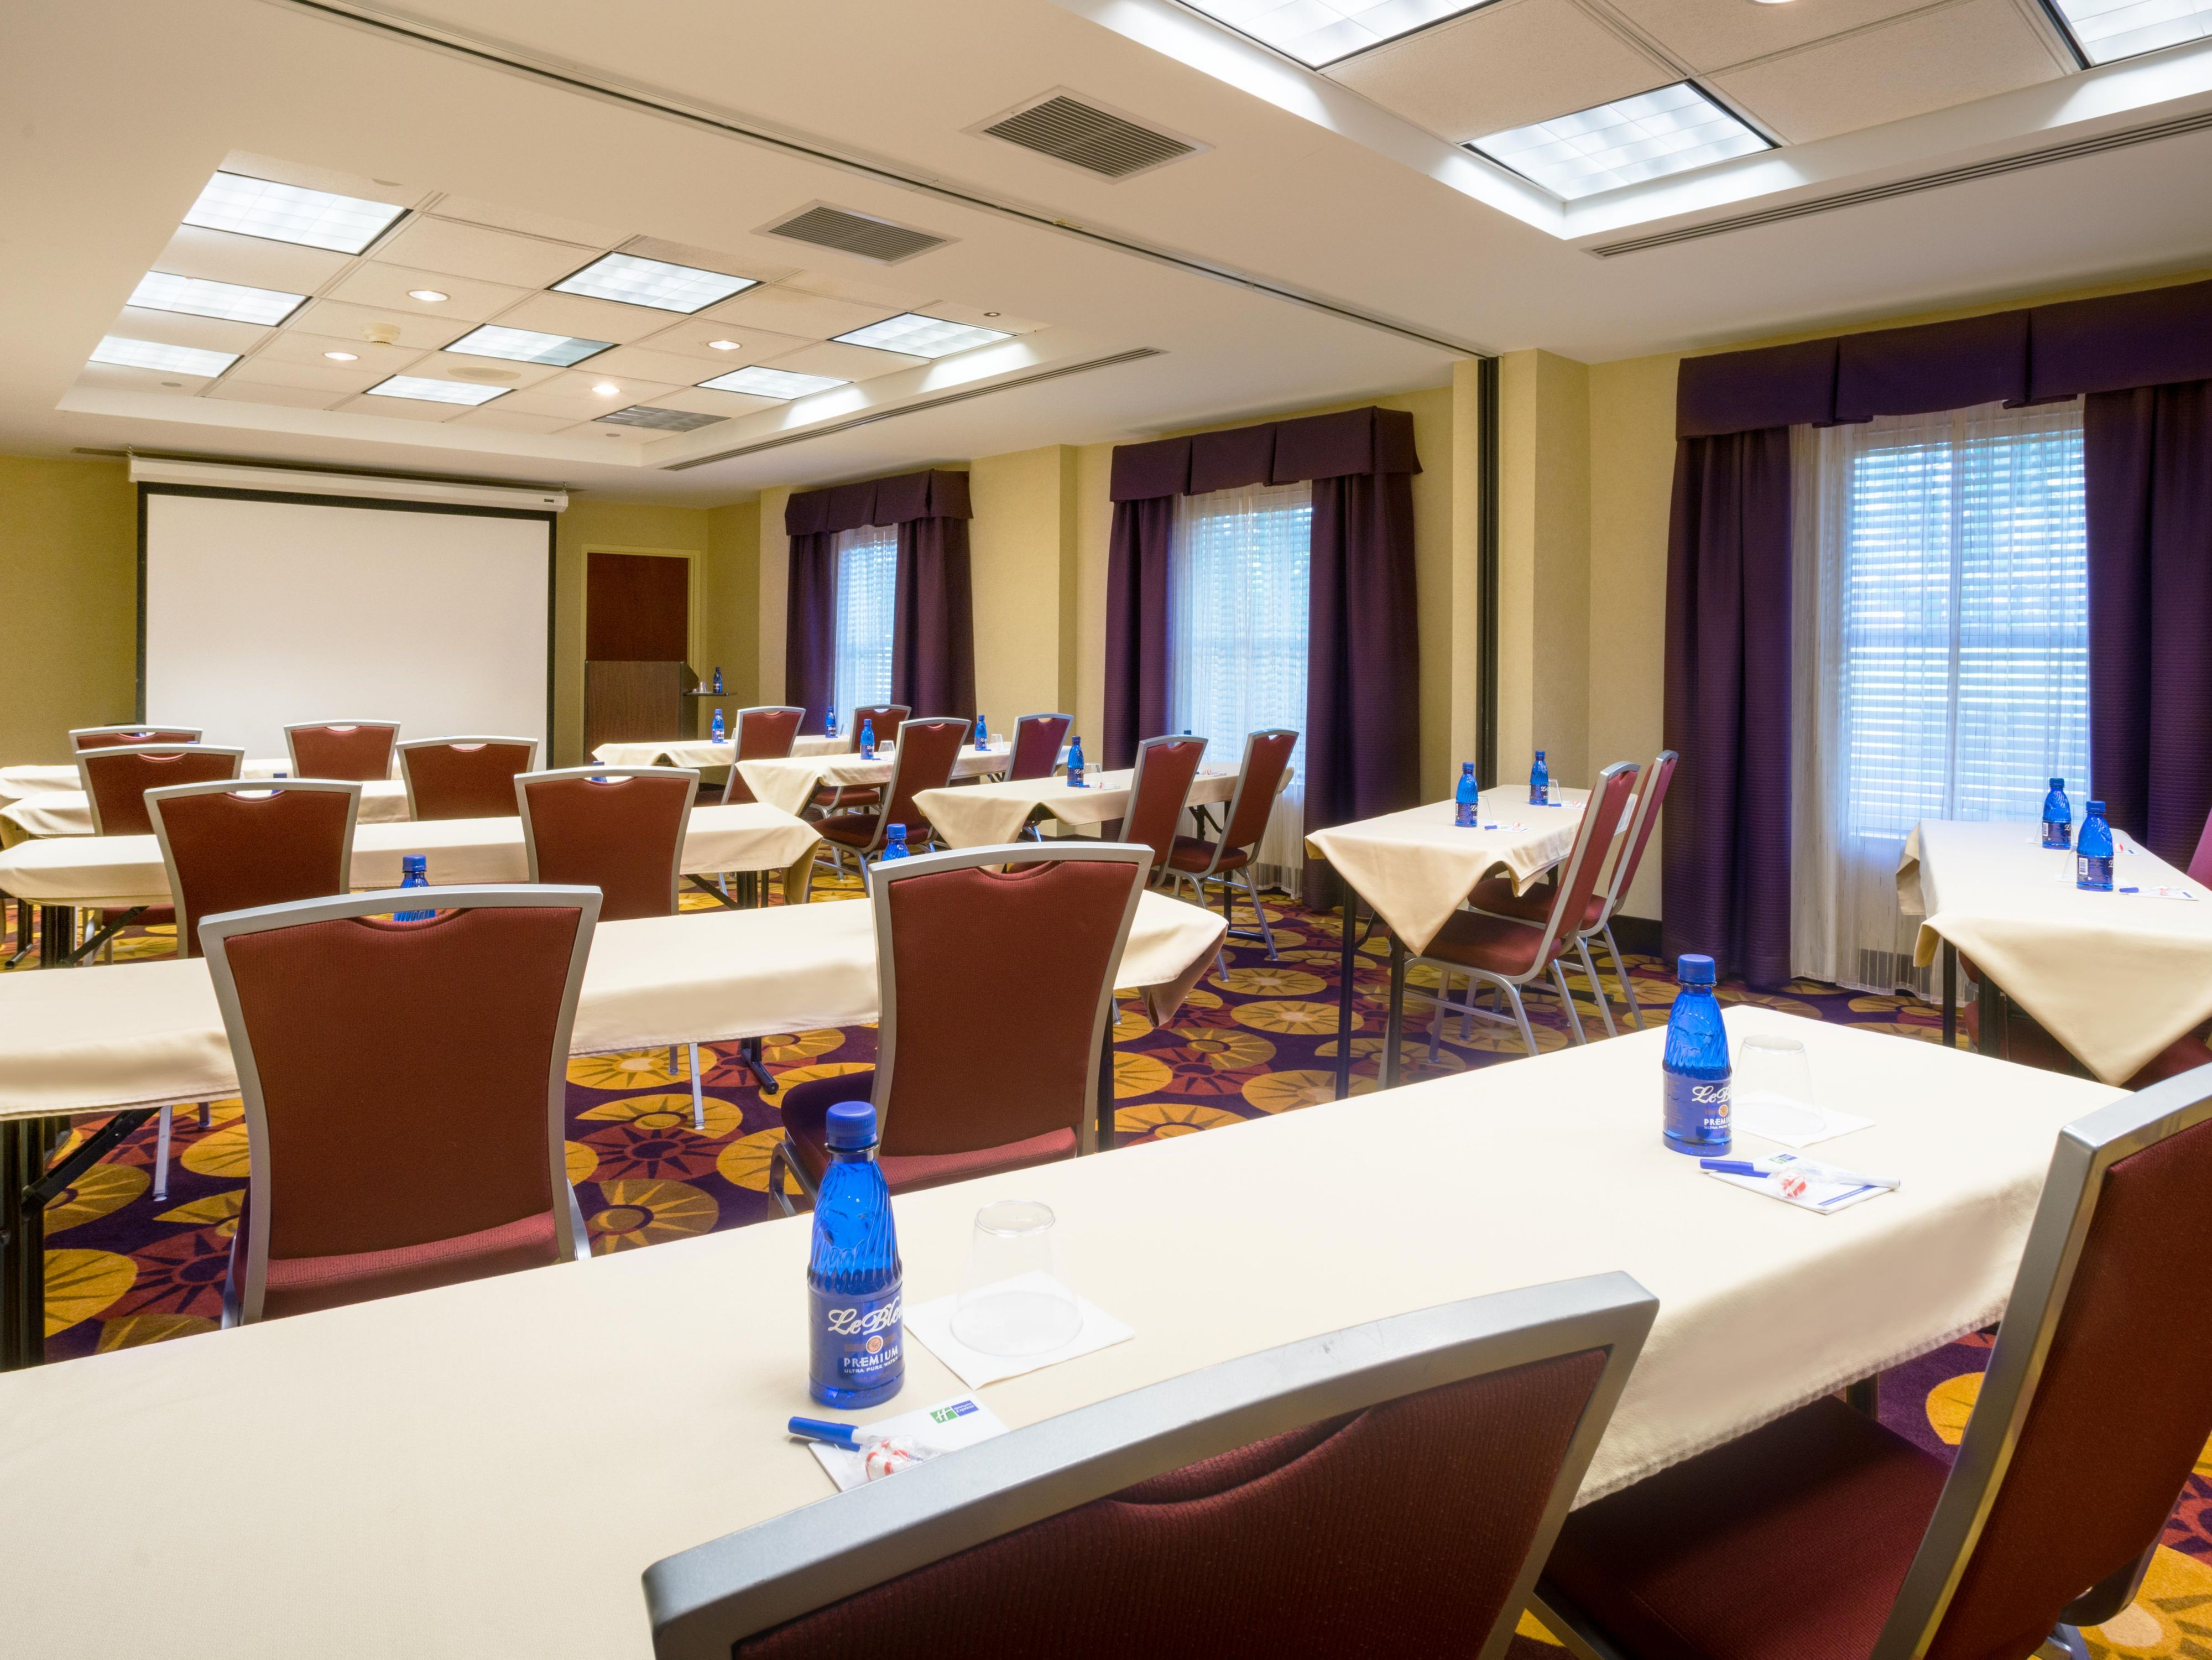 Our Davidson room offers flexible space to fit your function needs